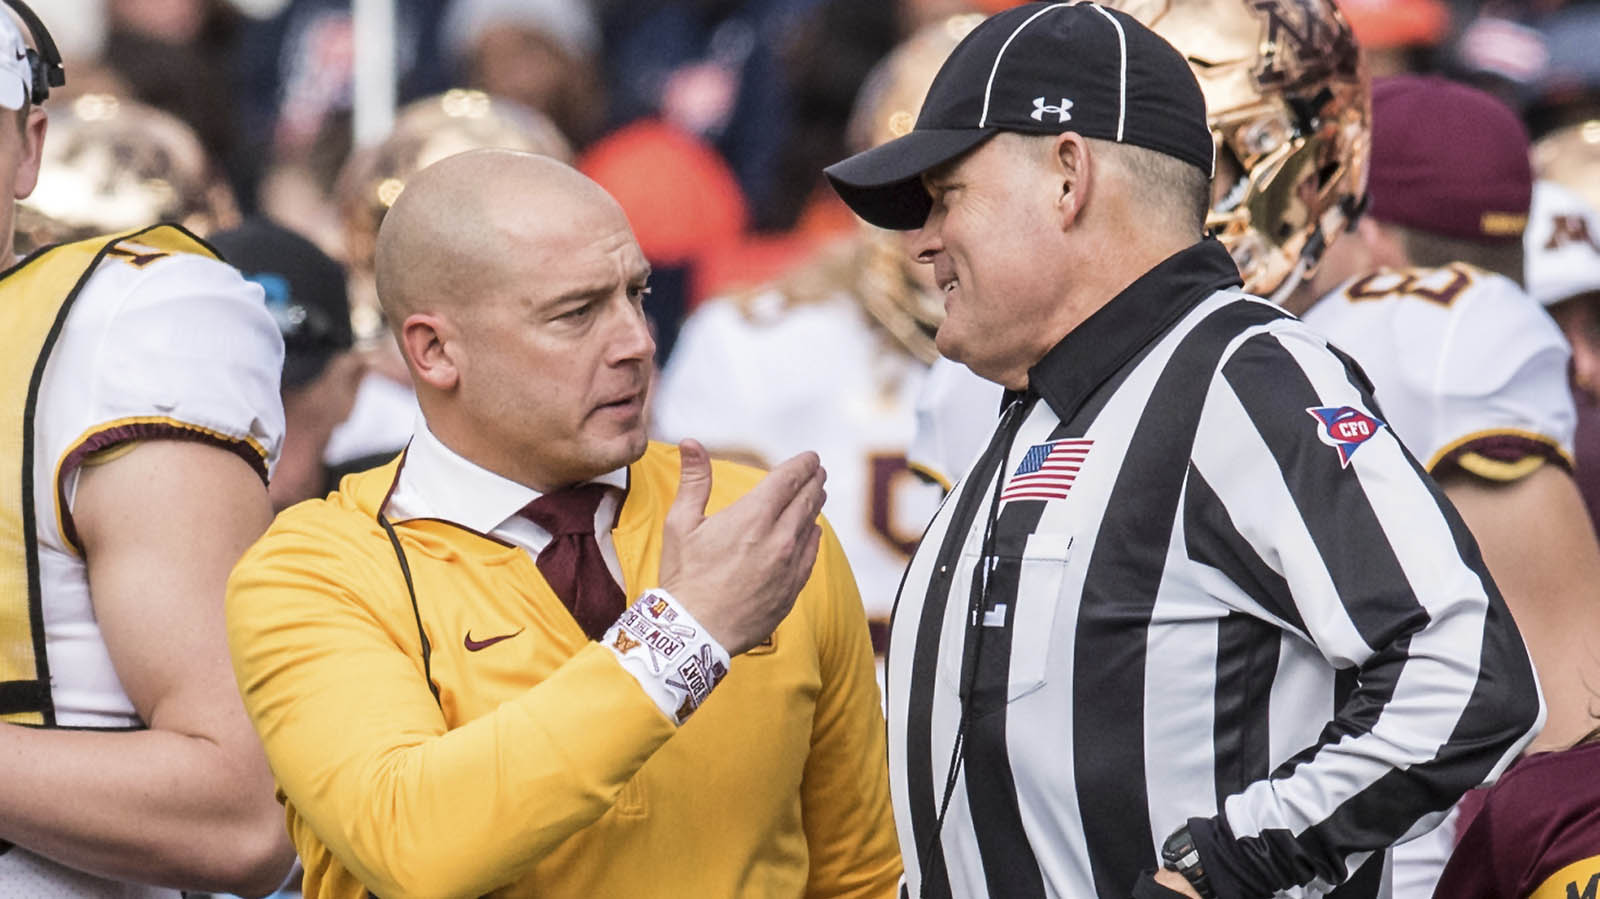 Minnesota Head Coach P.J. Fleck talks with an official in the first half of a NCAA college football game against Illinois Saturday, Nov. 3, 2018, in Champaign, Ill. (AP Photo/Holly Hart)